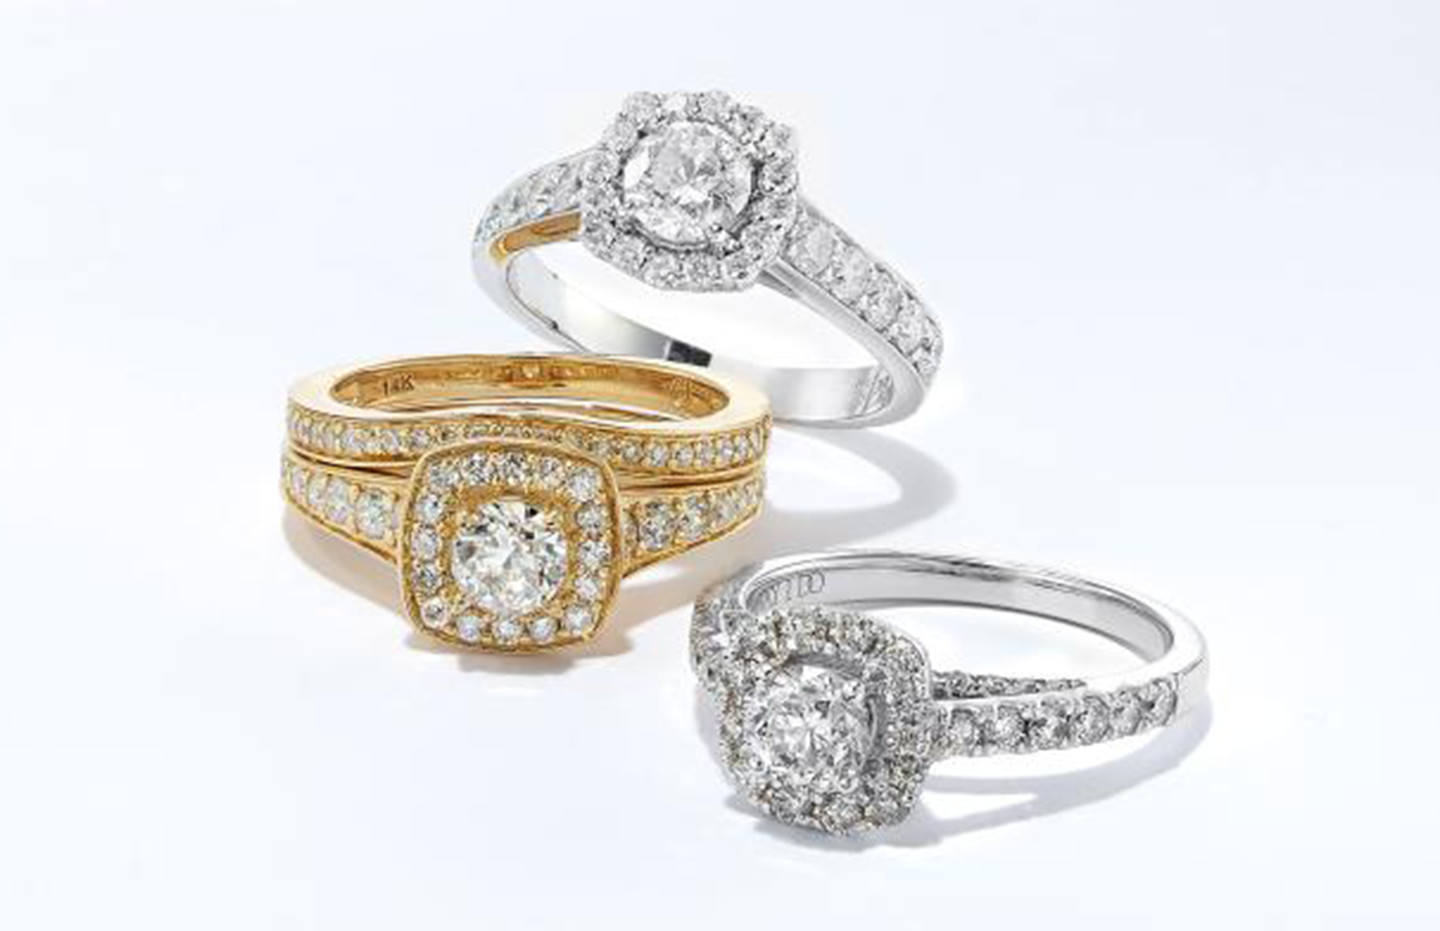 464affc896a Engagement Ring Settings - Macy's Engagement Rings Online